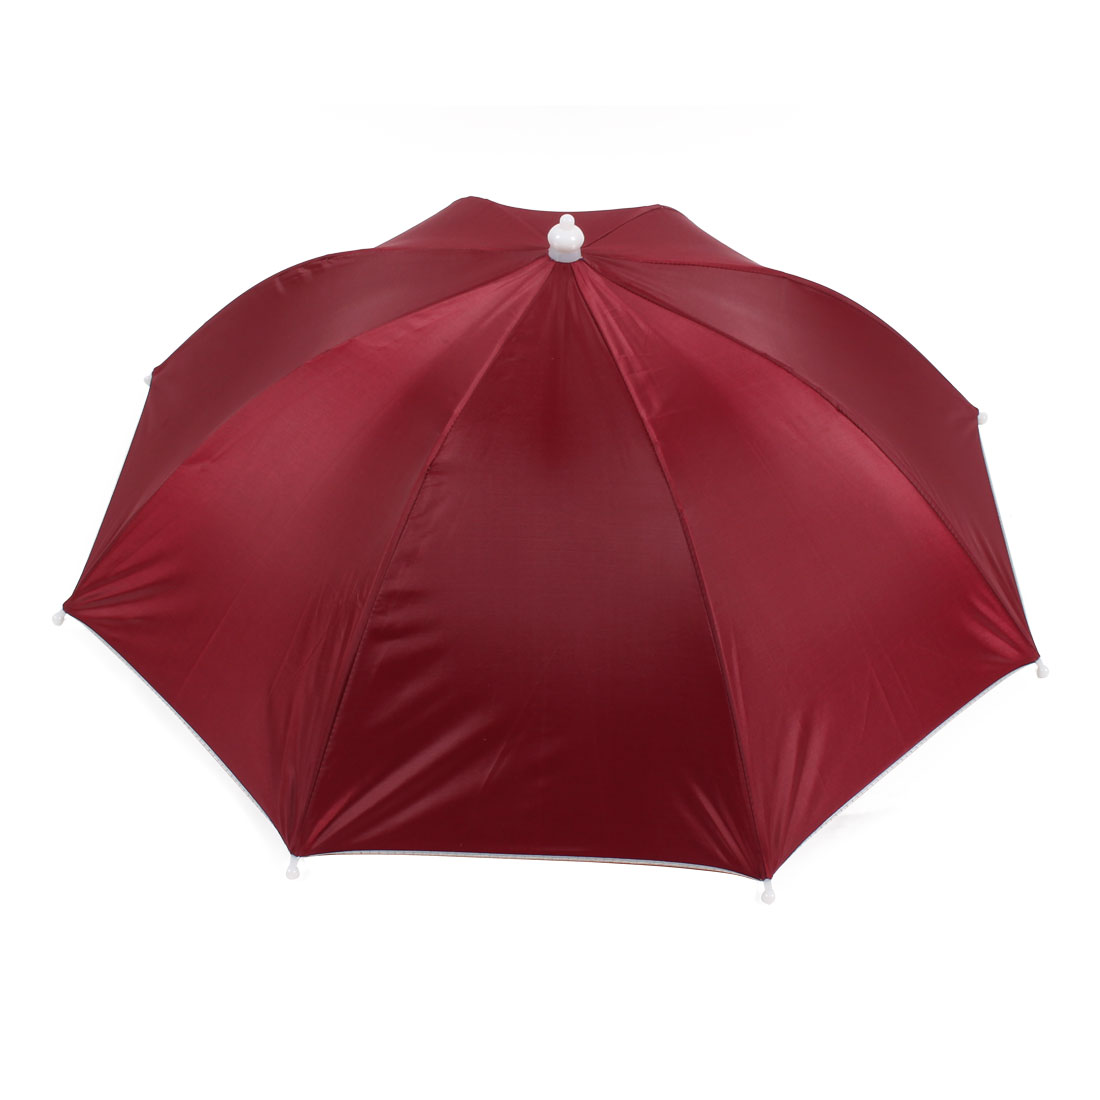 "16.1"" Long Handfree Elastic Head Band Burgundy Umbrella Hat"